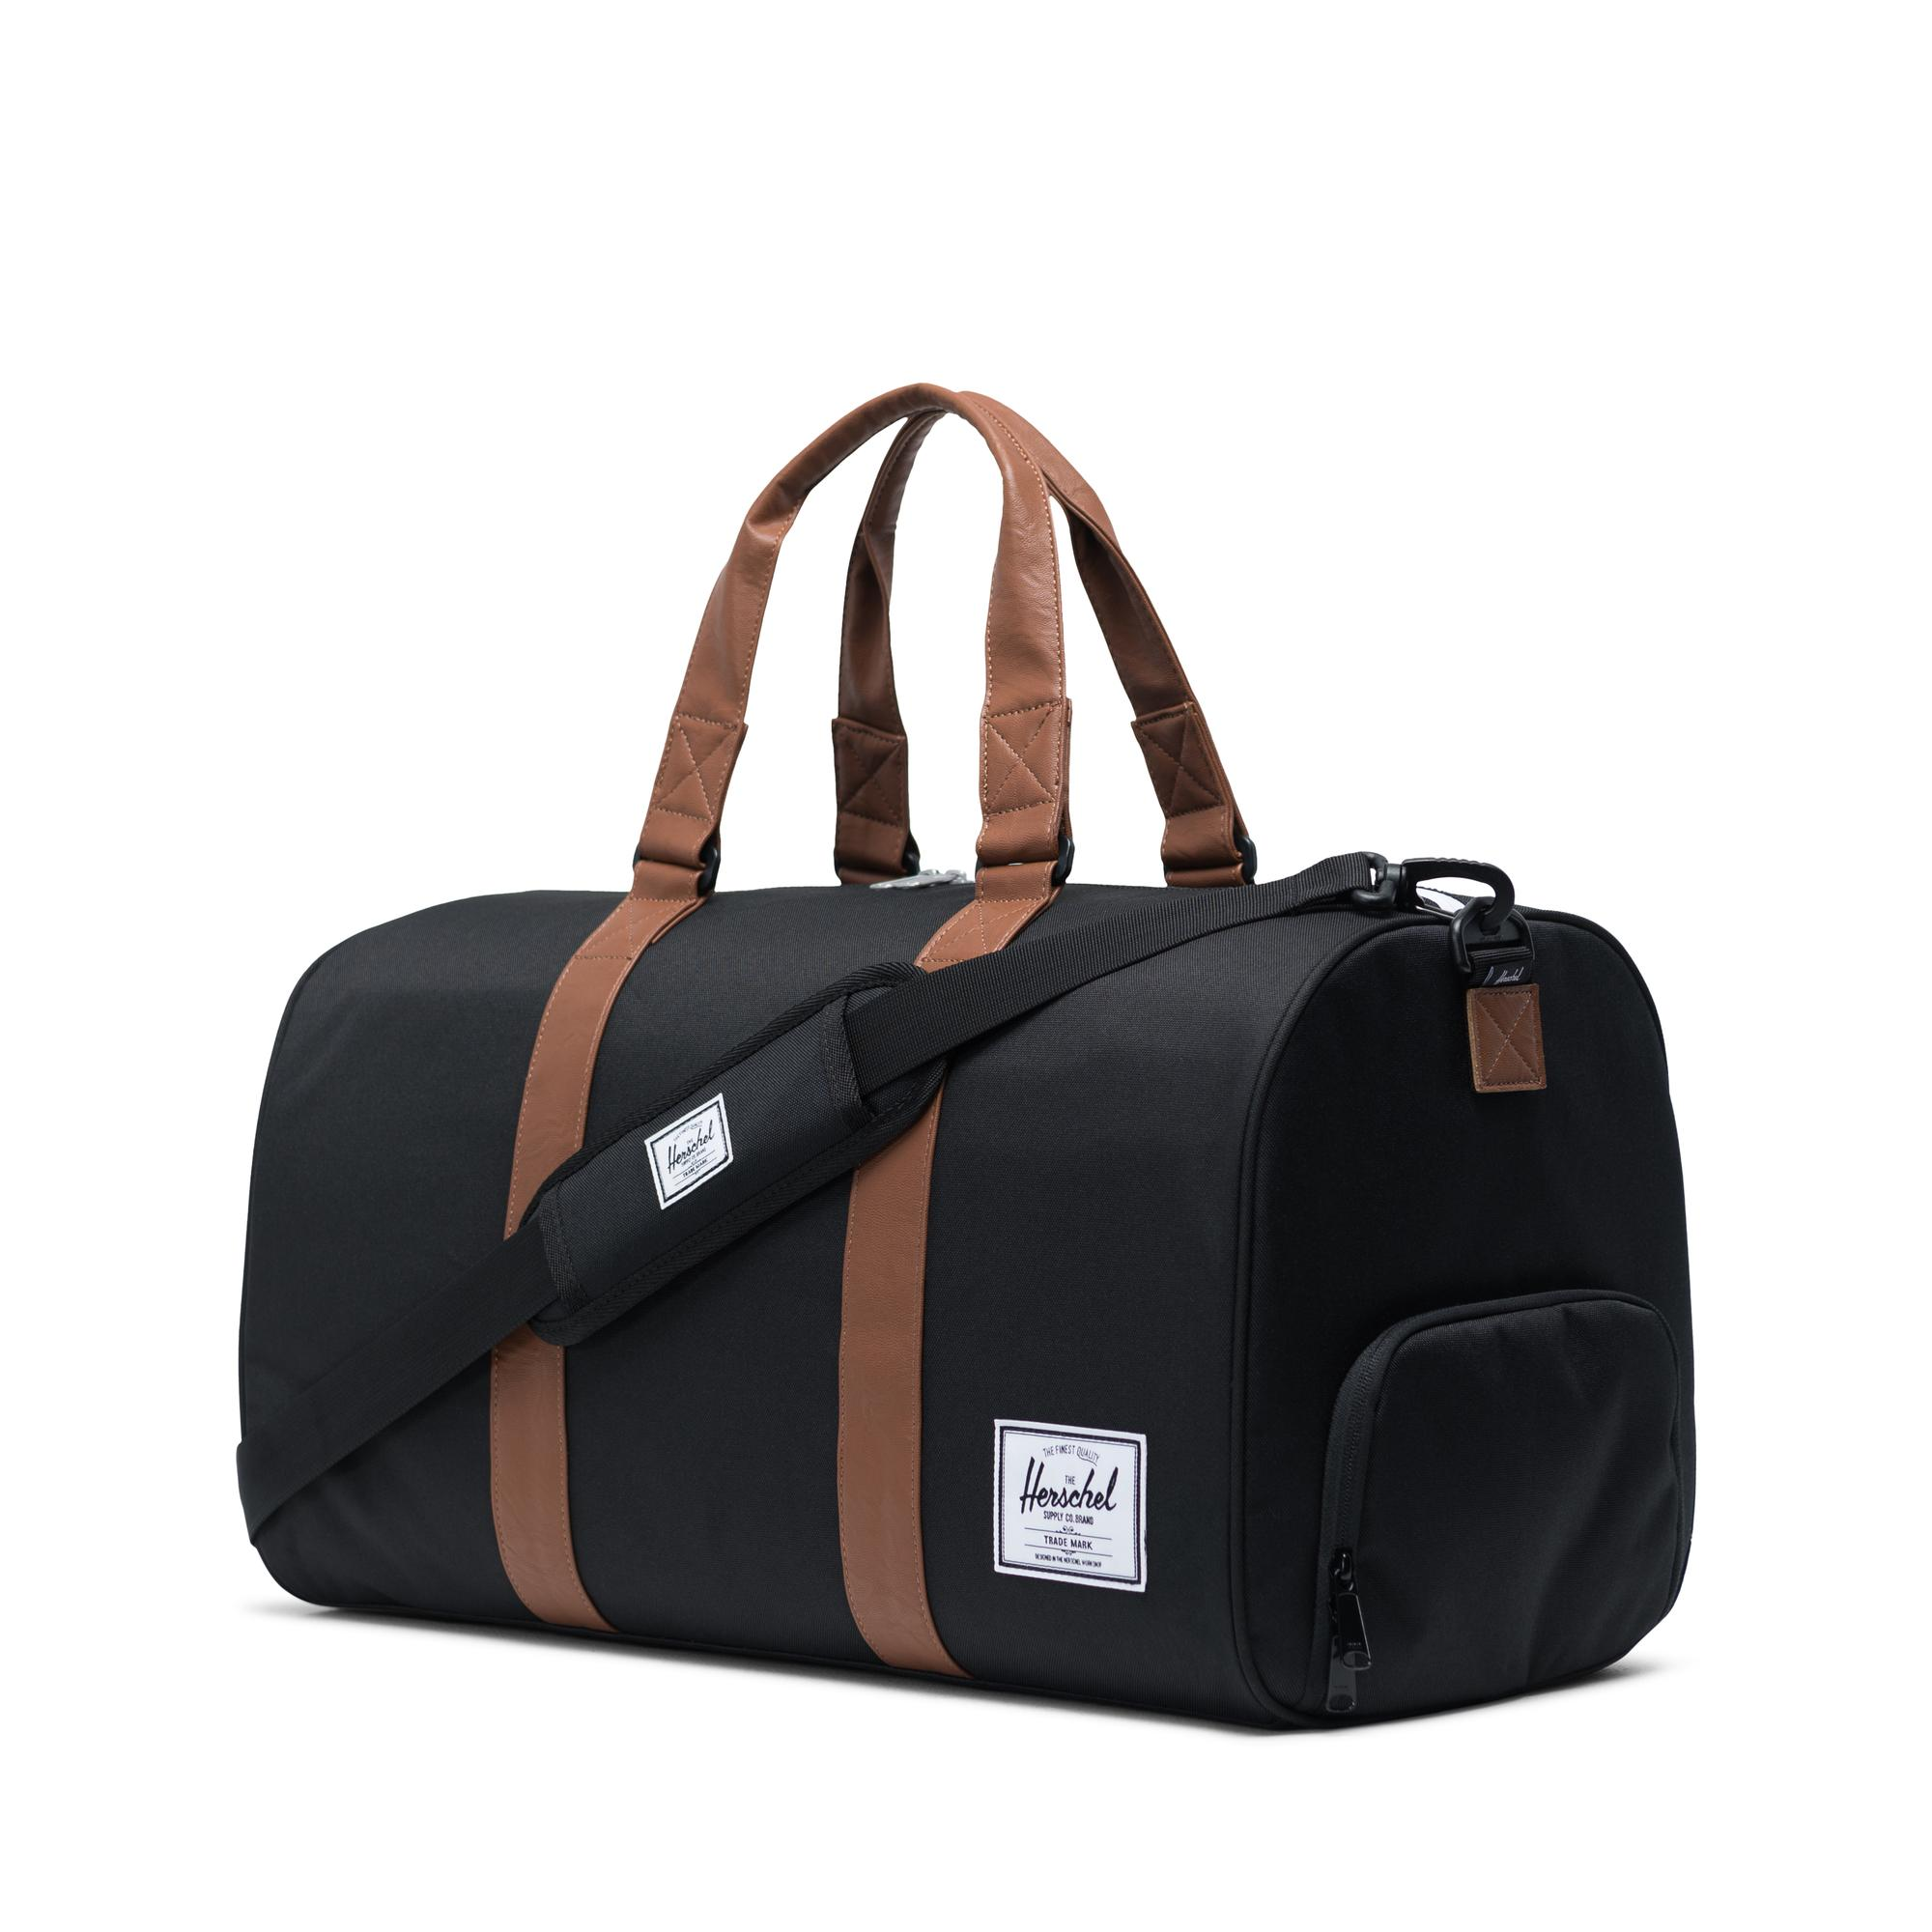 Novel Duffle  b5ee52277d05d